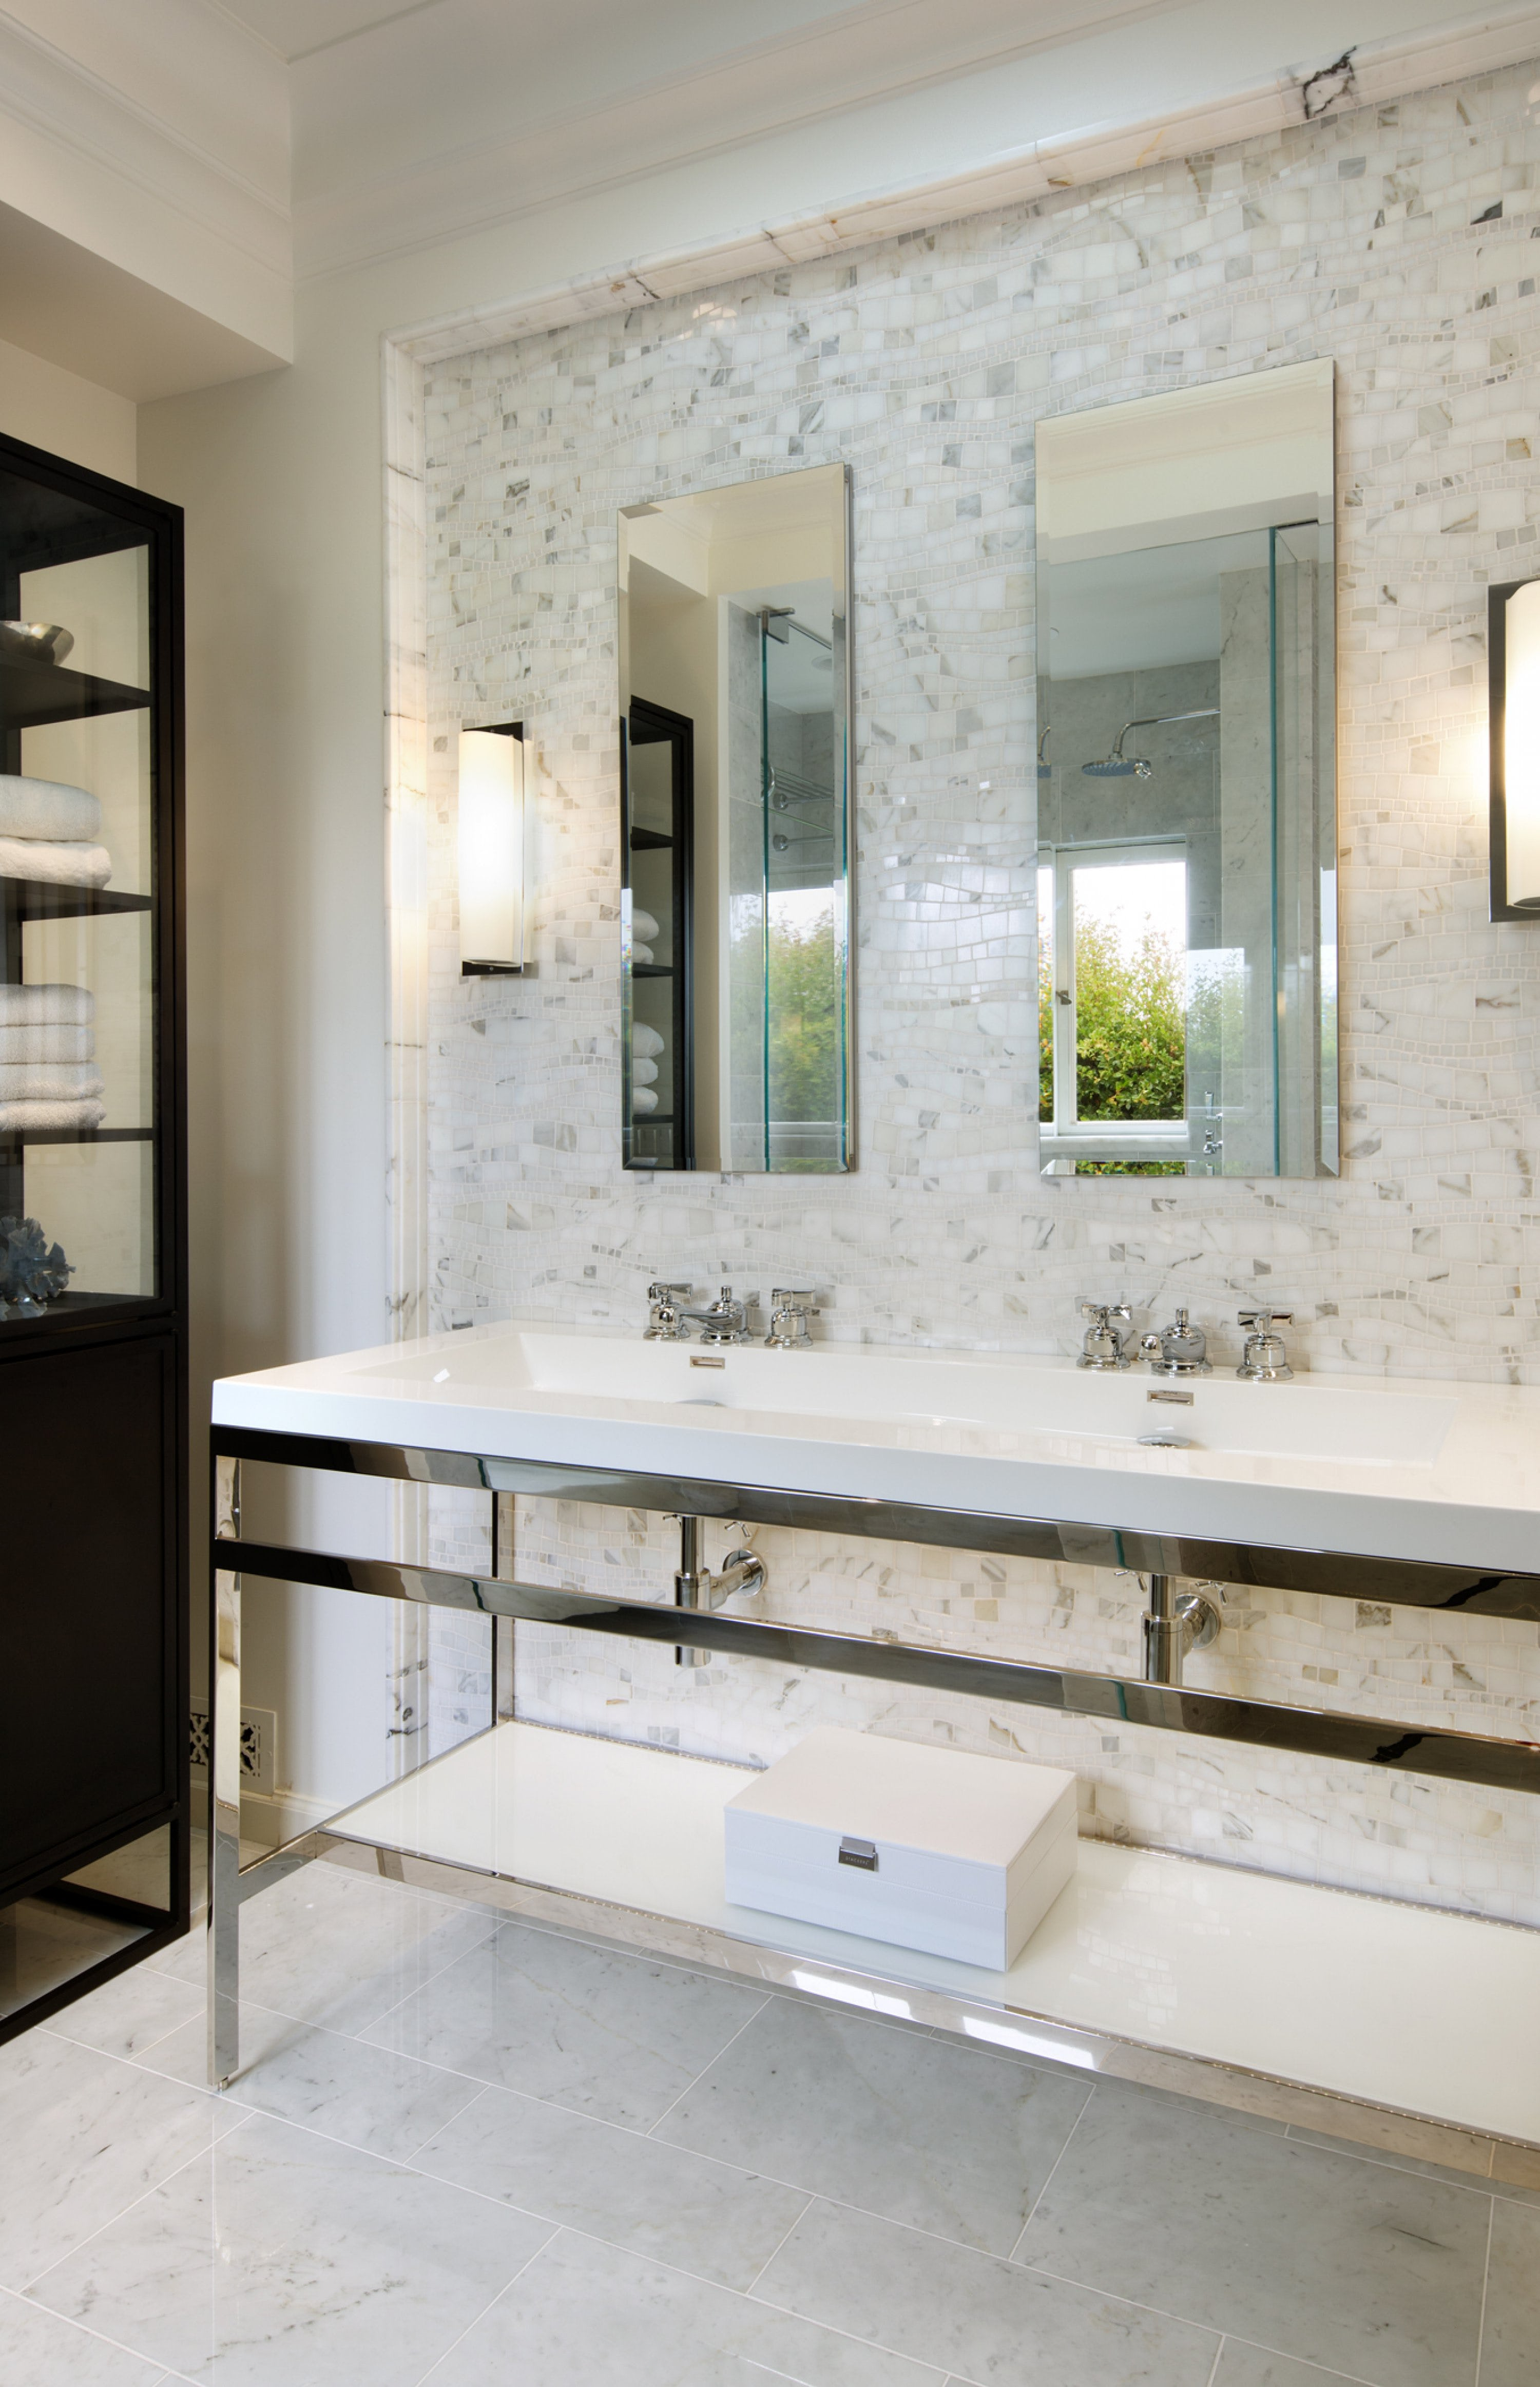 Award bathroom 2  1498498603 34944